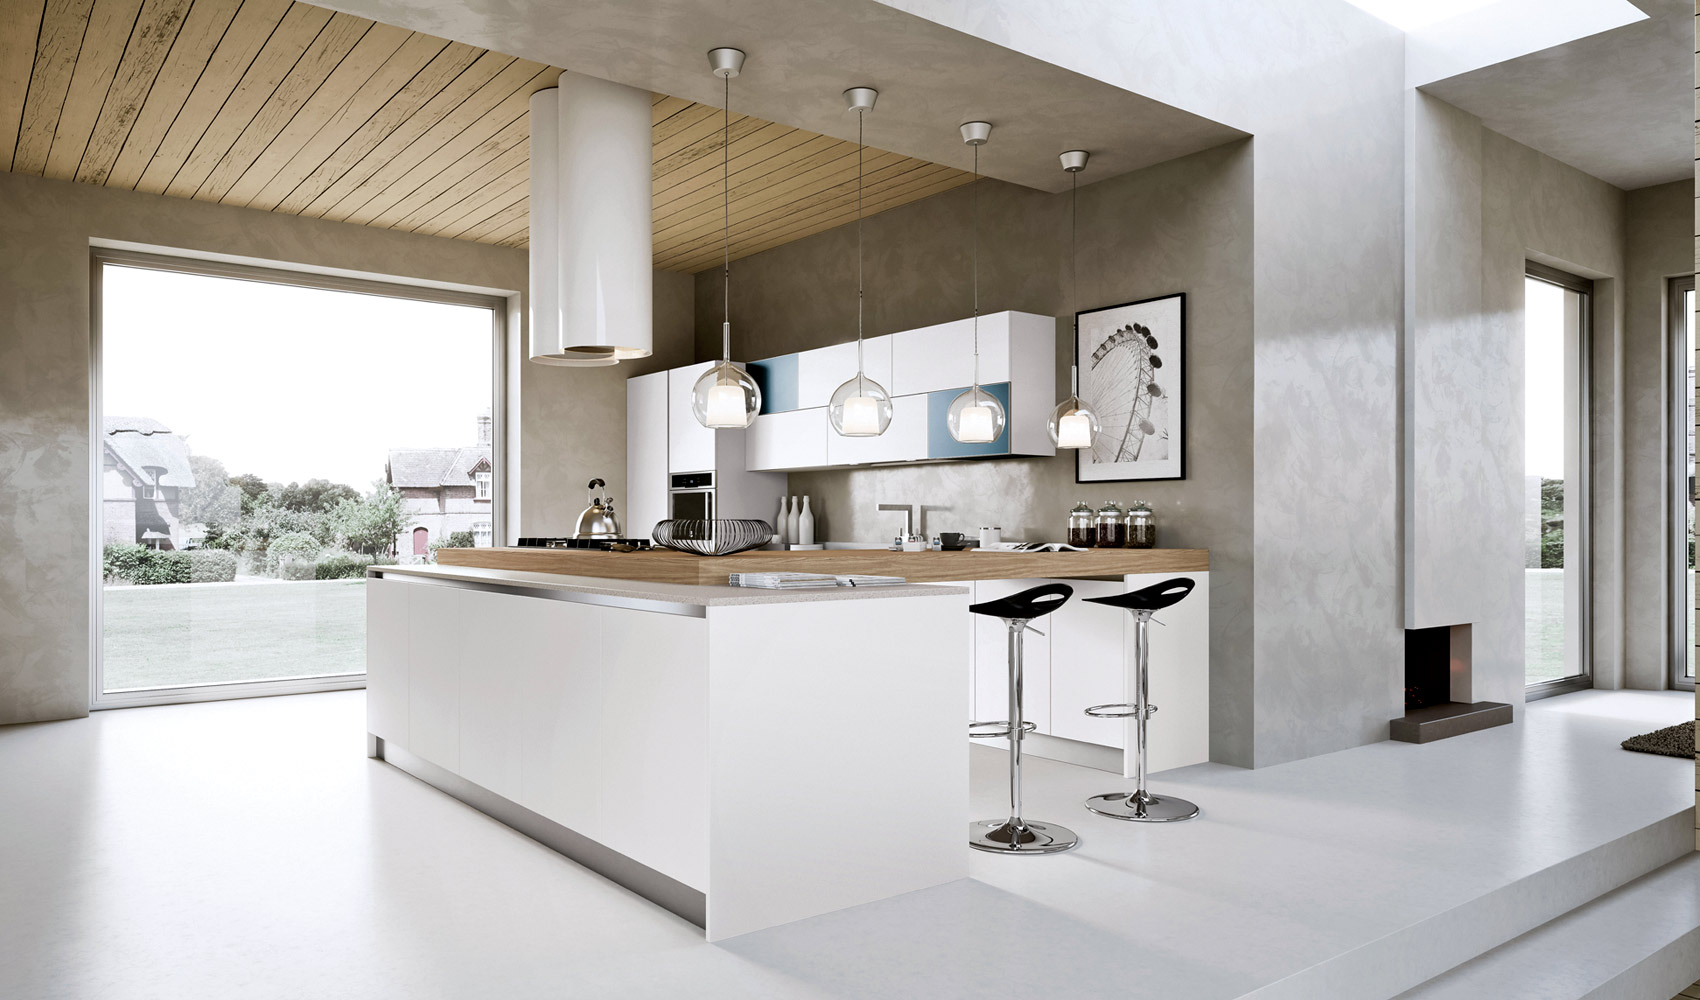 Kitchen Designs That Pop Interiors Inside Ideas Interiors design about Everything [magnanprojects.com]